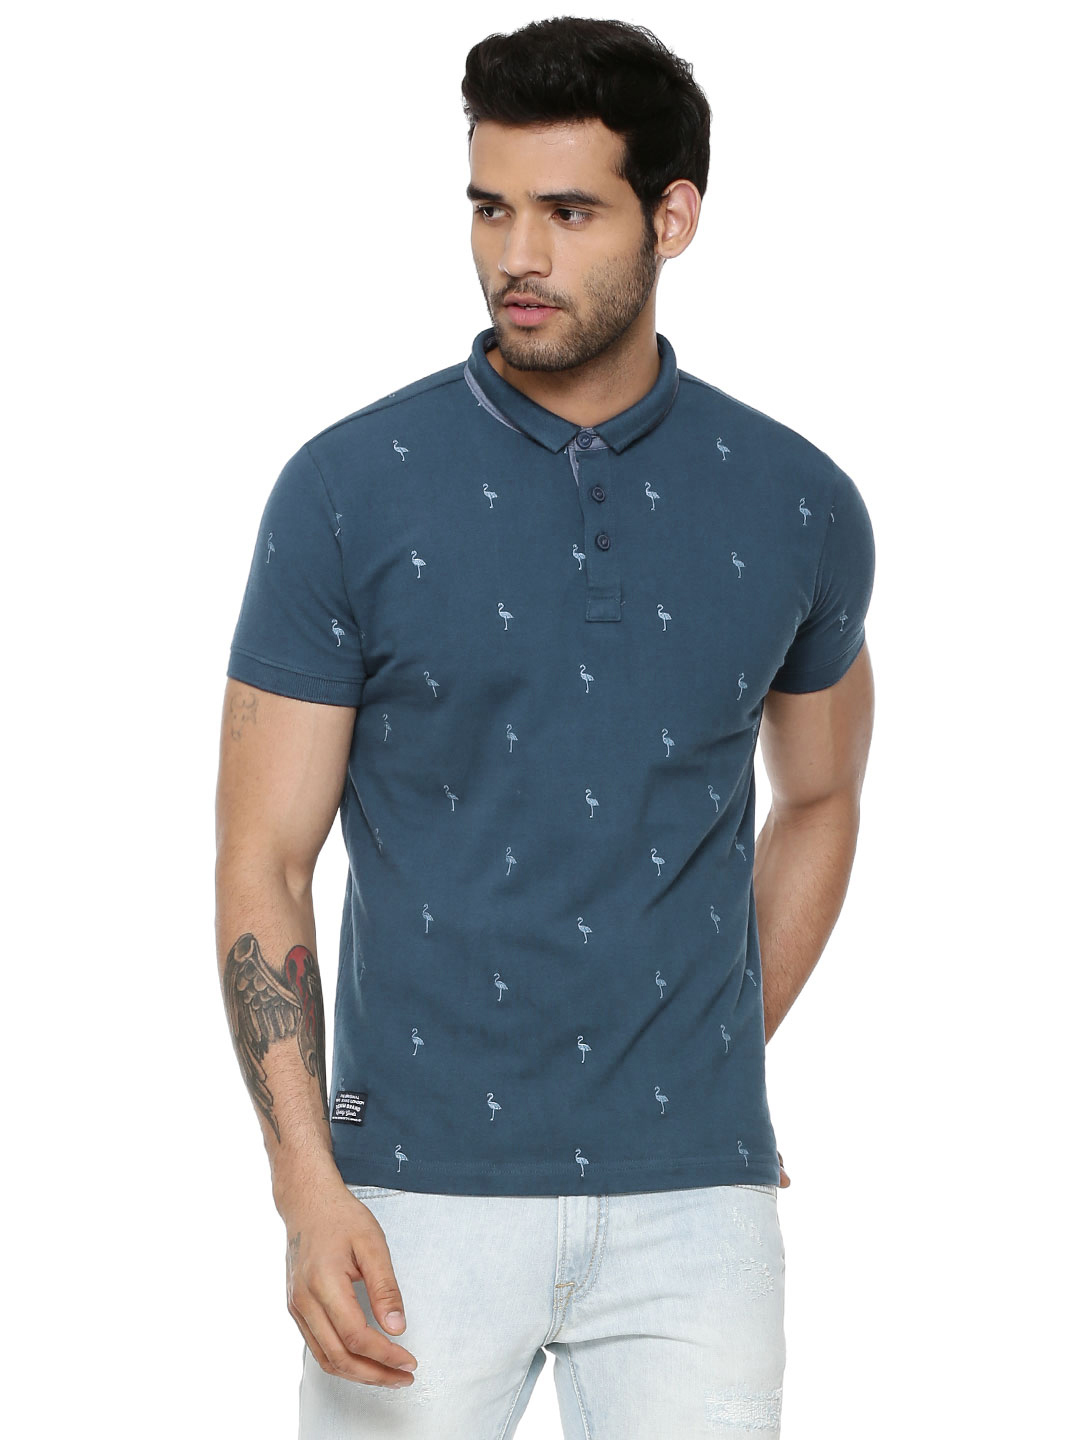 Pepe Jeans DK-DENIM Embroidered Polo In Slim Collar 1